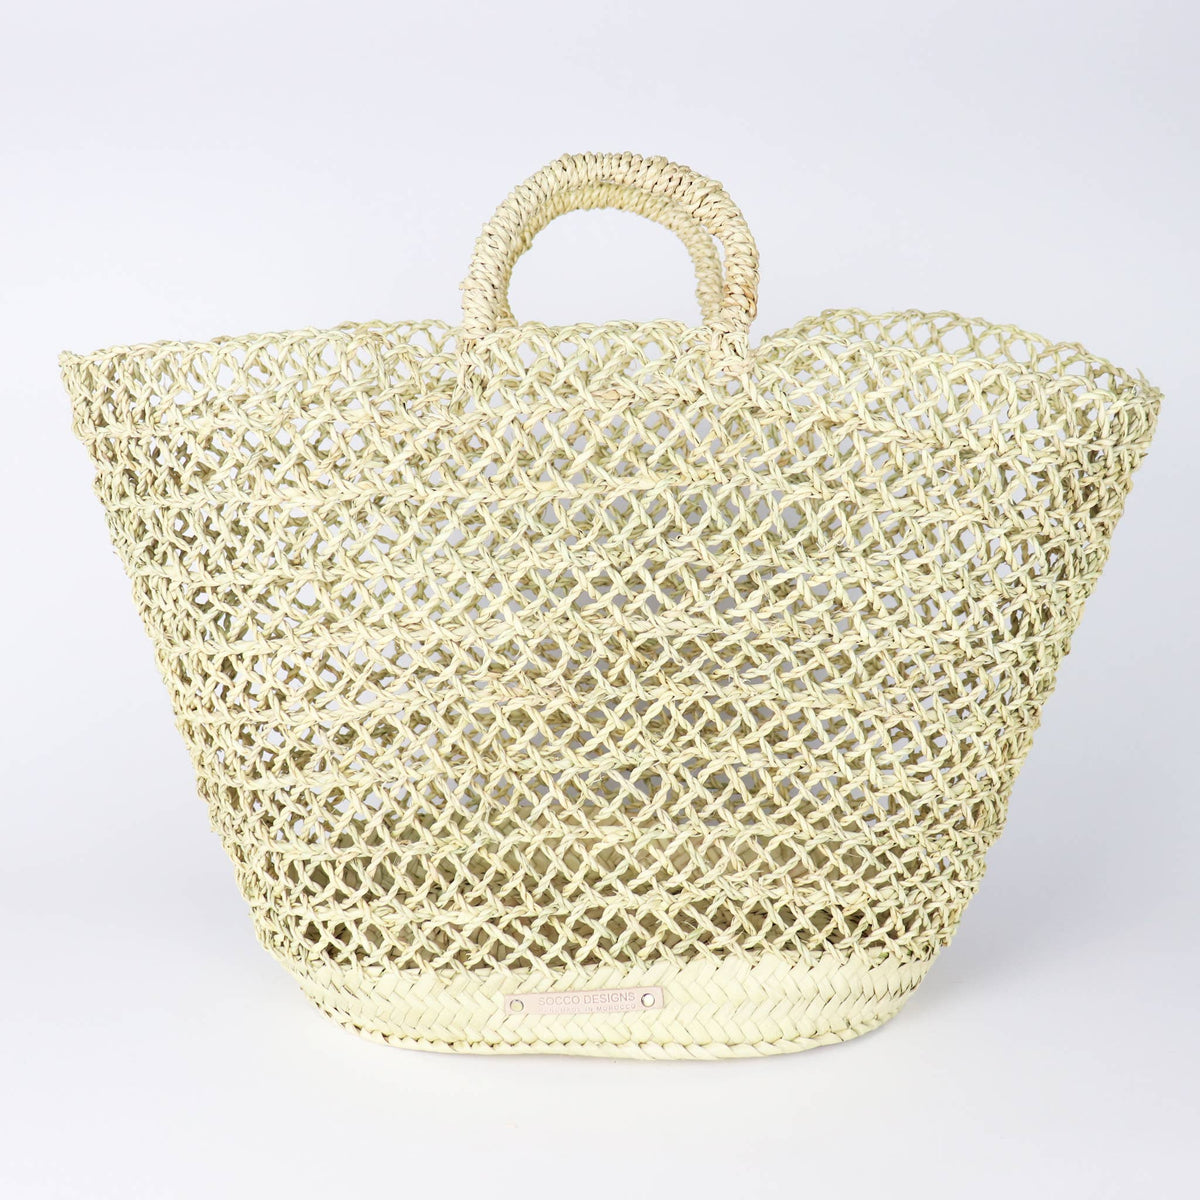 Albufeira French Basket - Straw Beach Tote